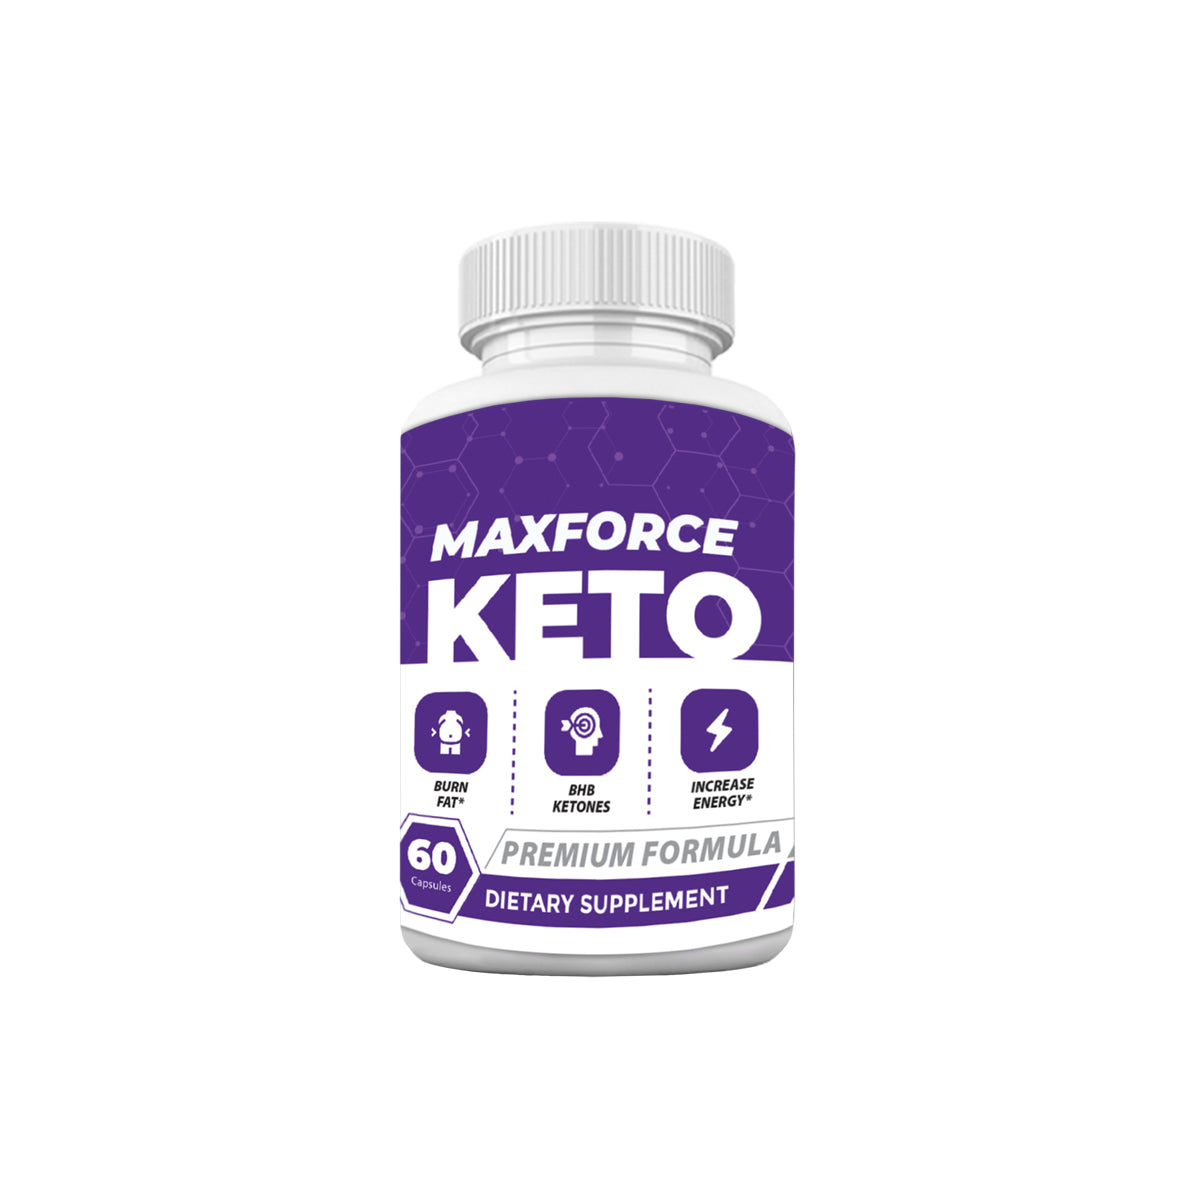 shopify-Max Force Garcinia 60 or 120 Count - Garcinia, Keto, Cleanse or Three Pack-6